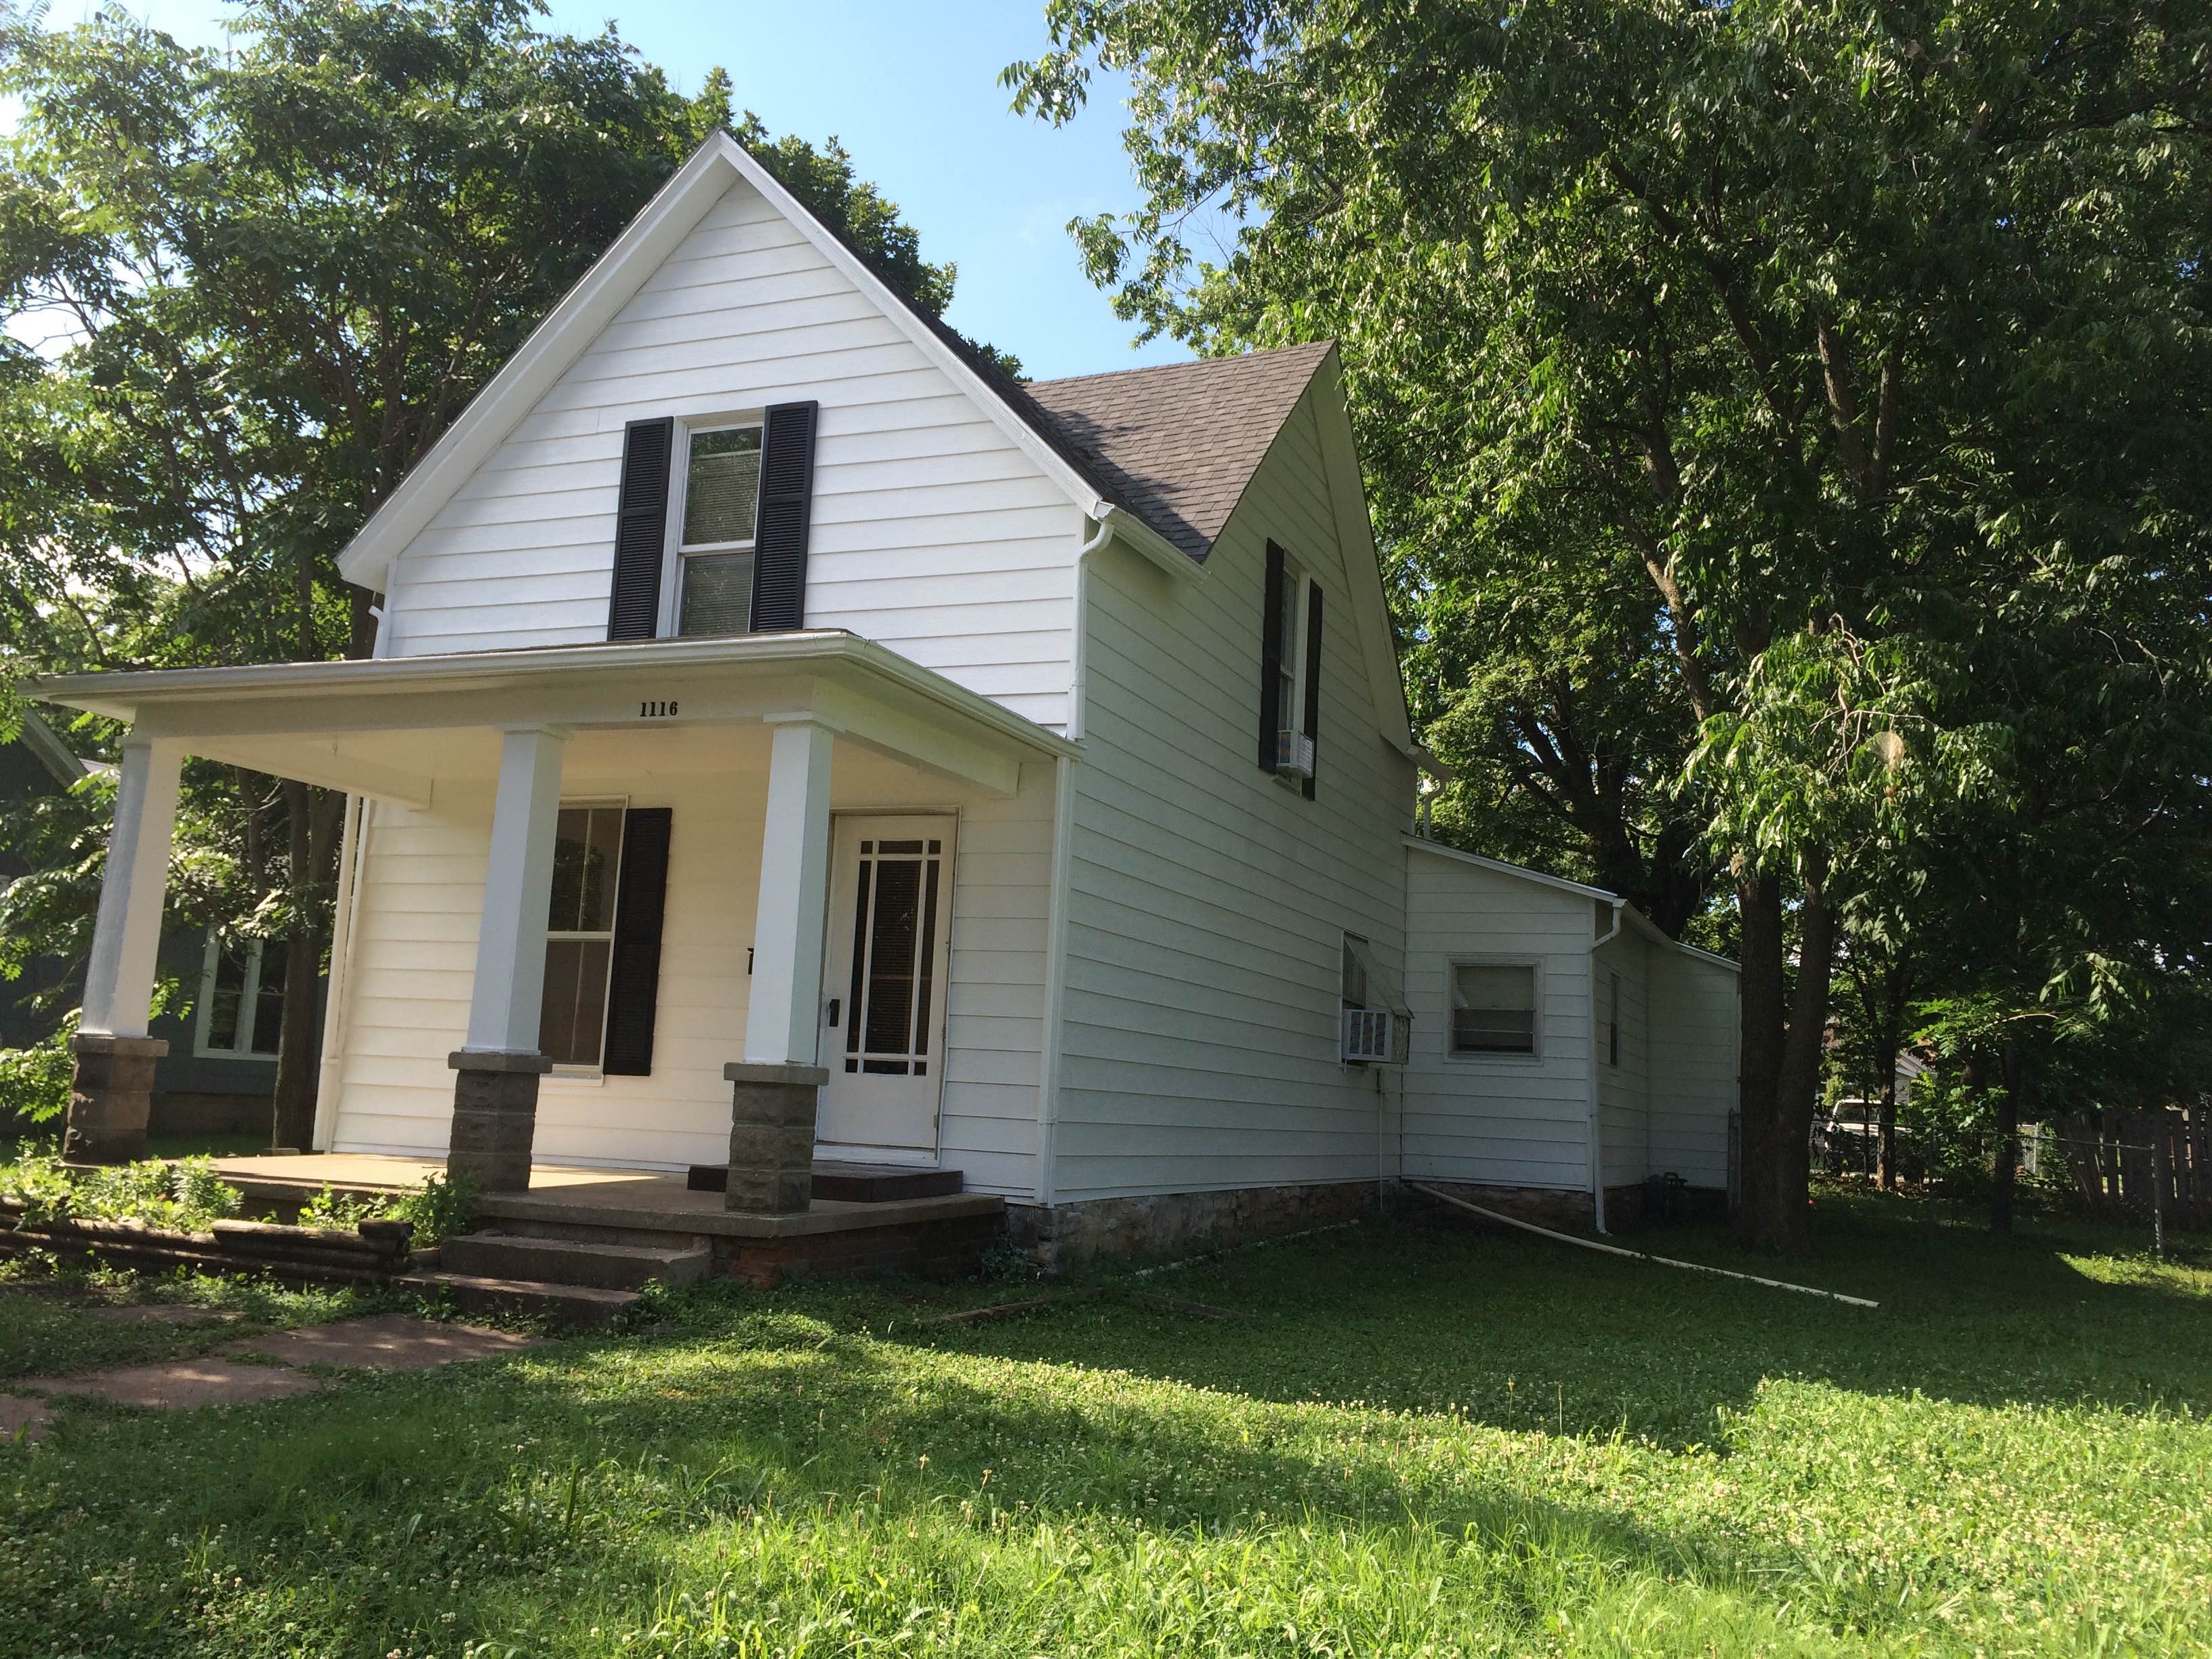 1116 E. Wall, Fort Scott, Bourbon County, Kansas, United States 66701, 4 Bedrooms Bedrooms, ,2 BathroomsBathrooms,House,For Rent,E. Wall,2,1017